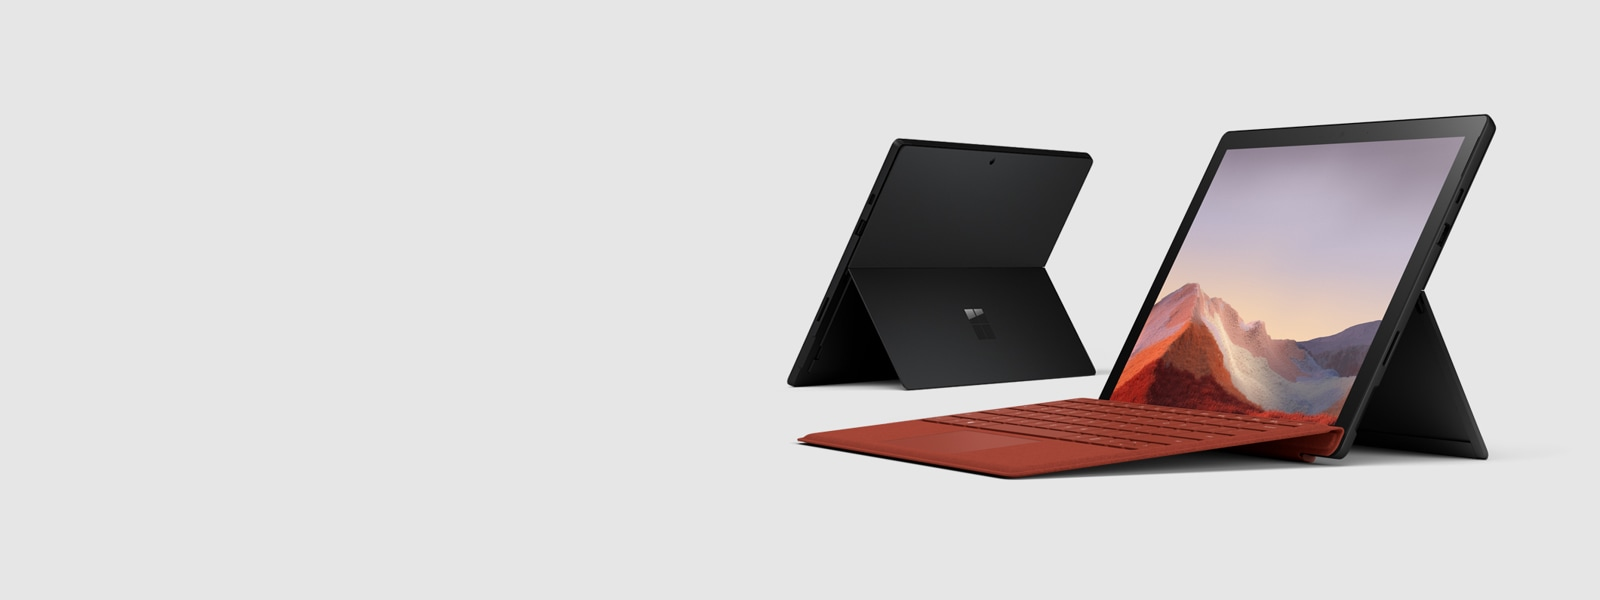 Two Surface Pro 7 devices